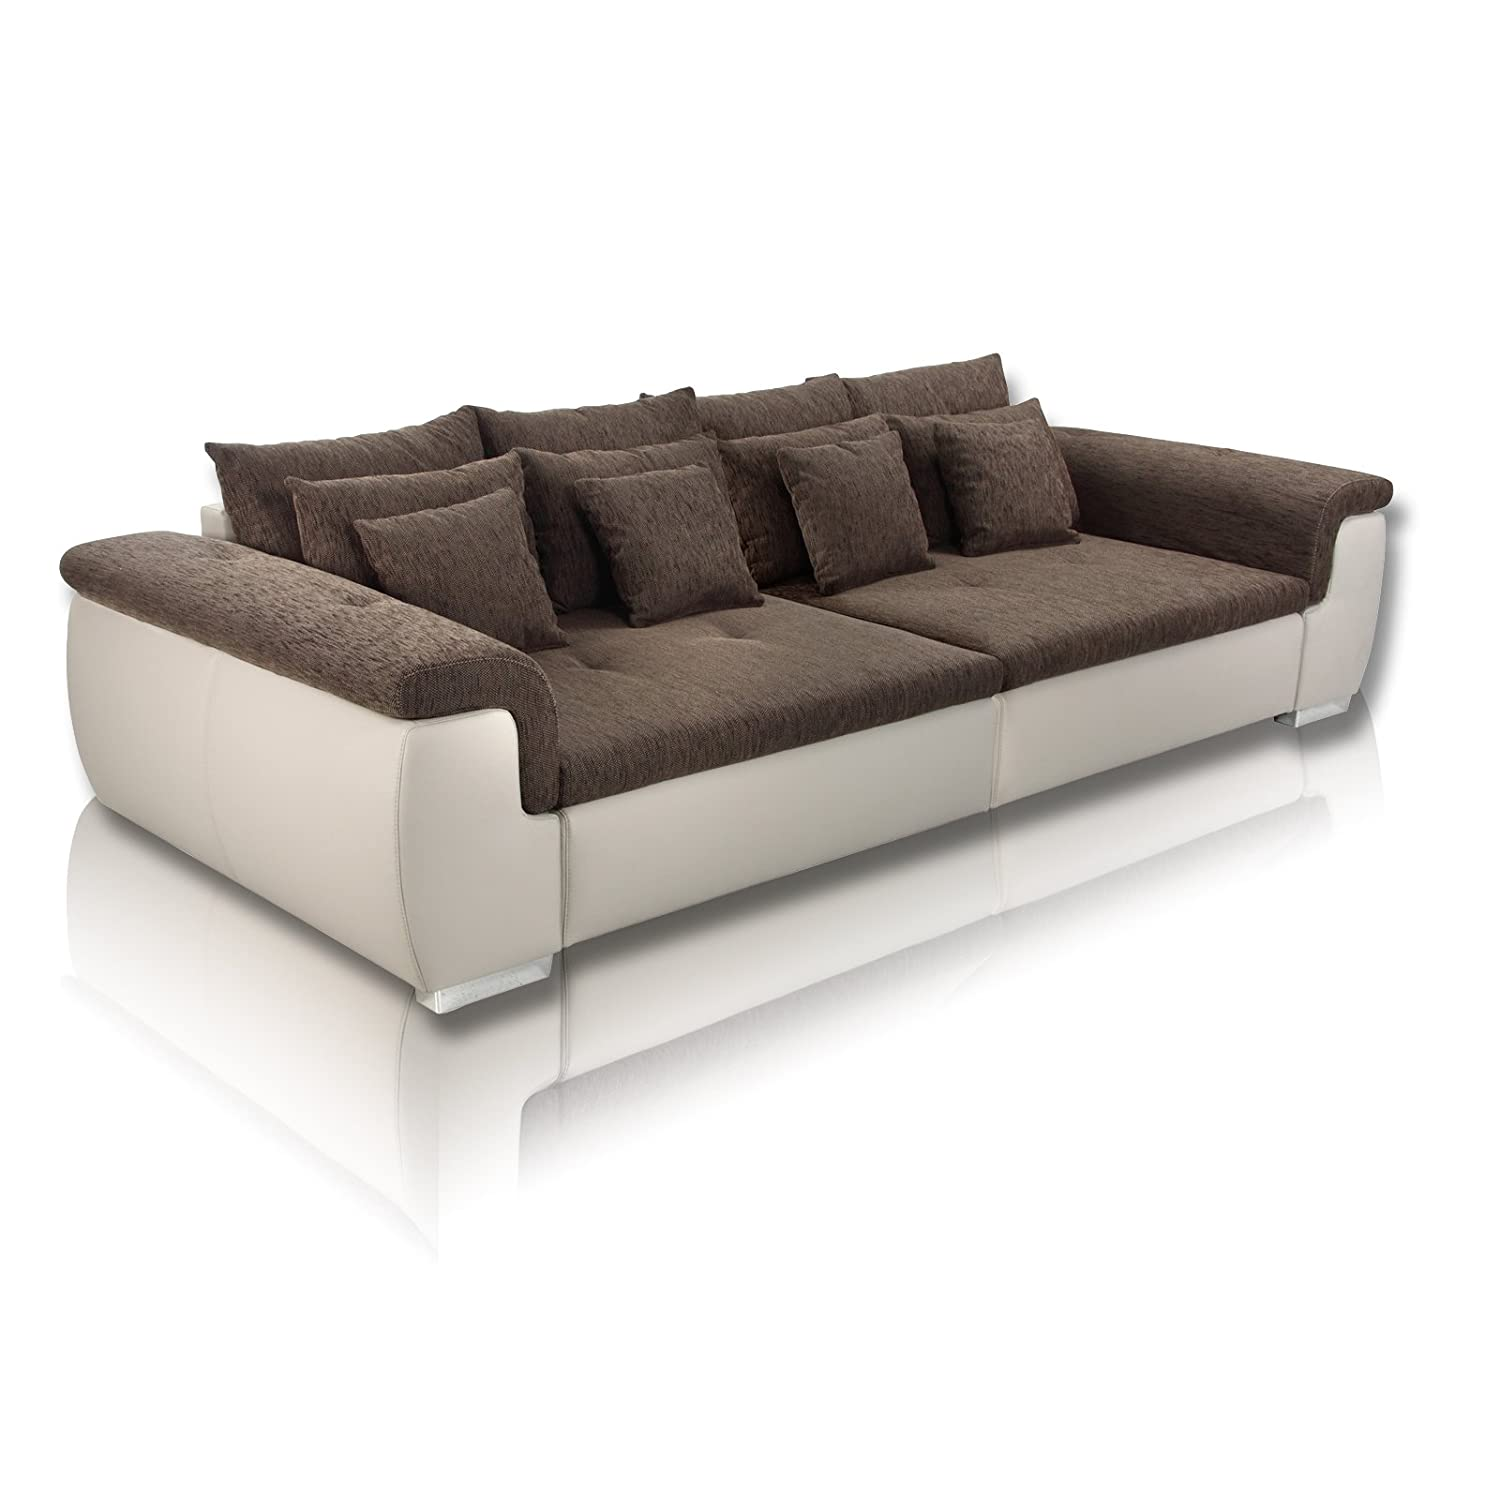 Roller Big Sofa Couch Couch Big Point Braun